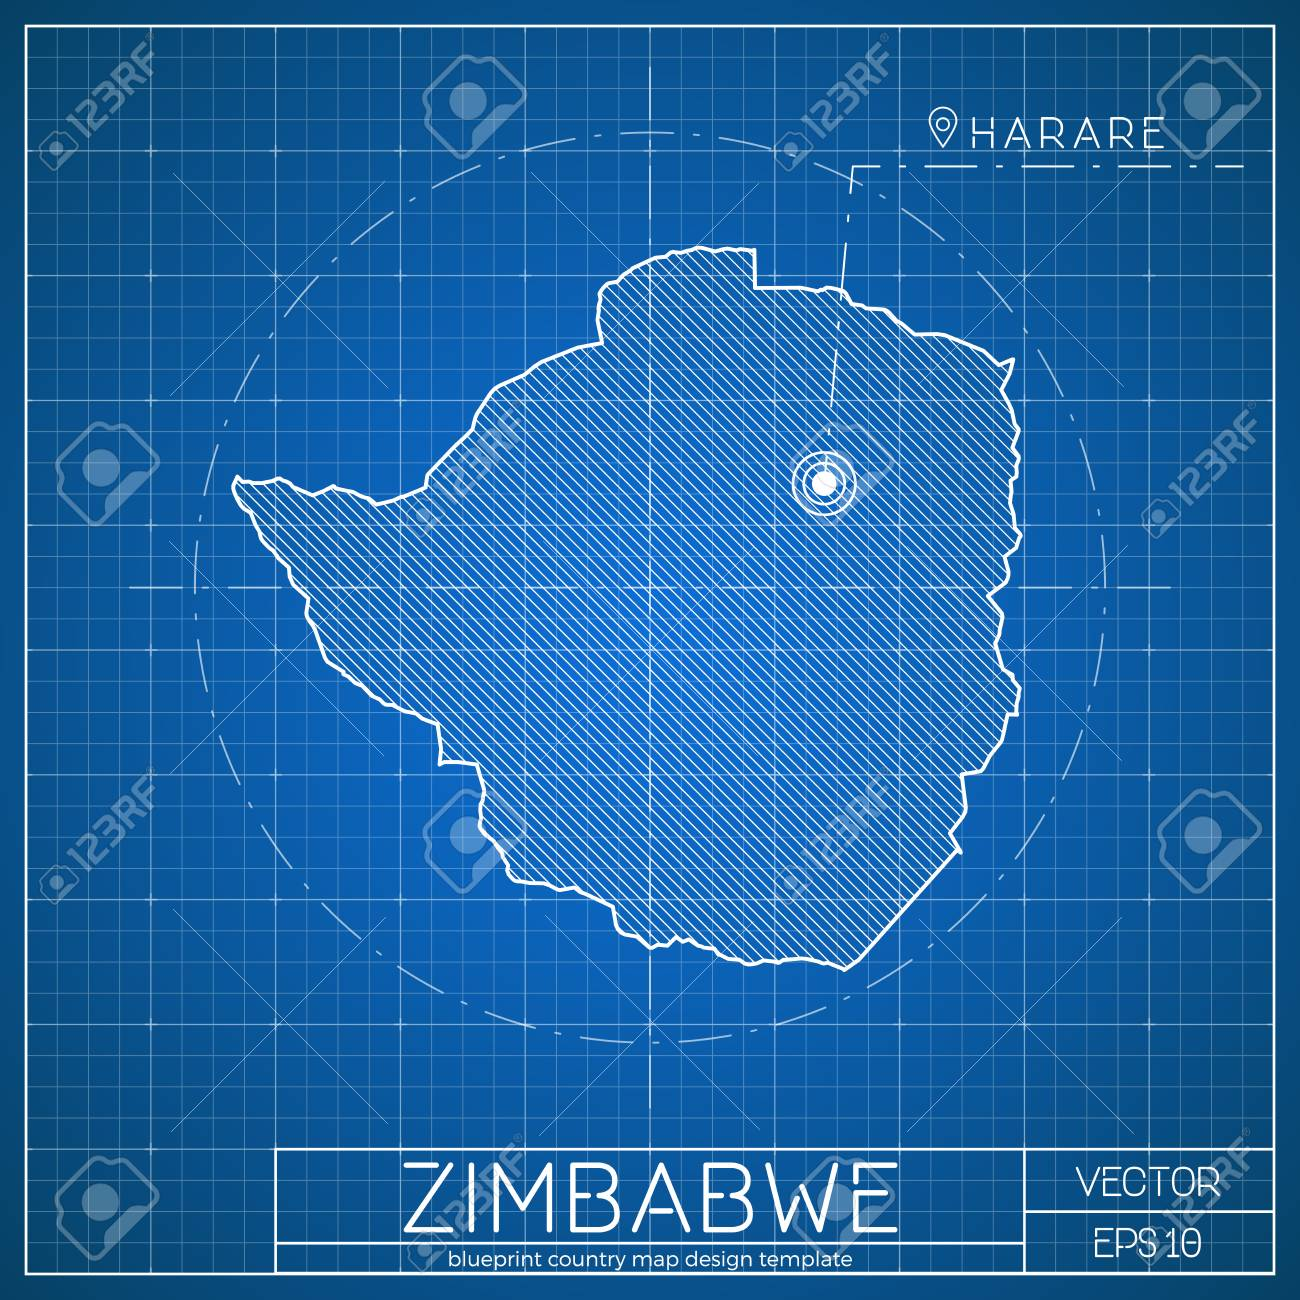 Zimbabwe blueprint map template with capital city  Harare marked